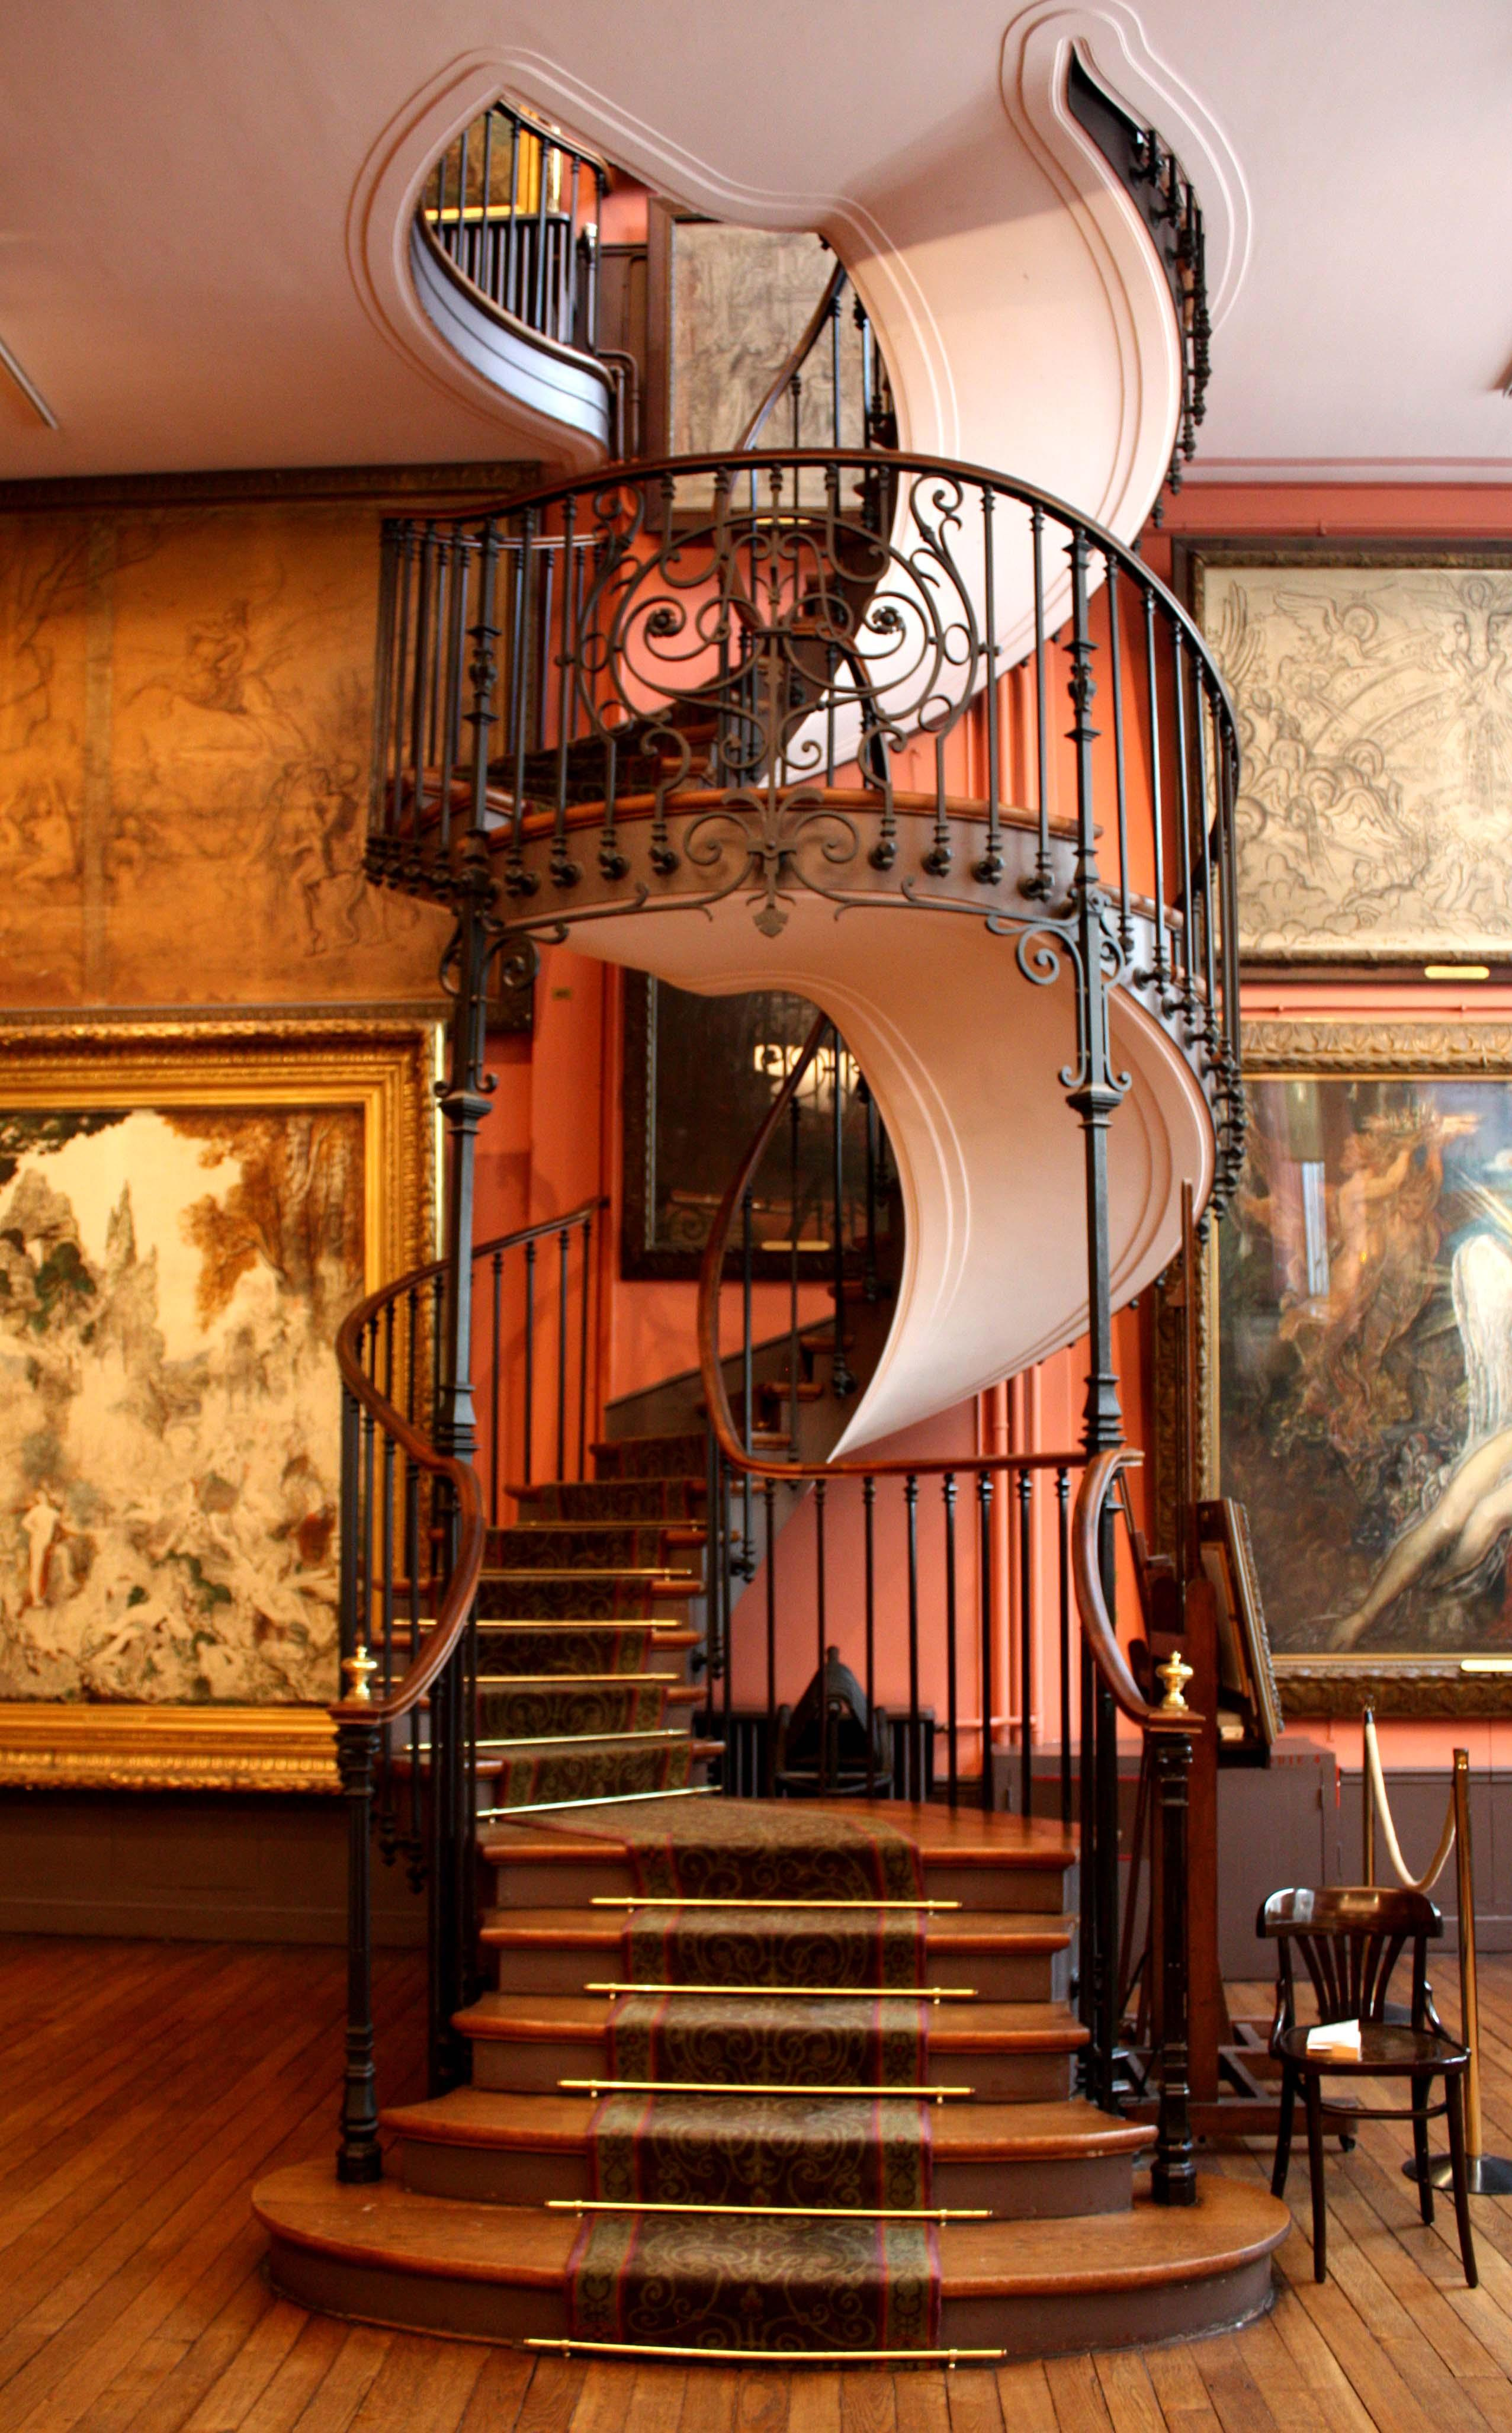 Gemma King - Gustave Moreau museum - www.MyFrenchLife.org